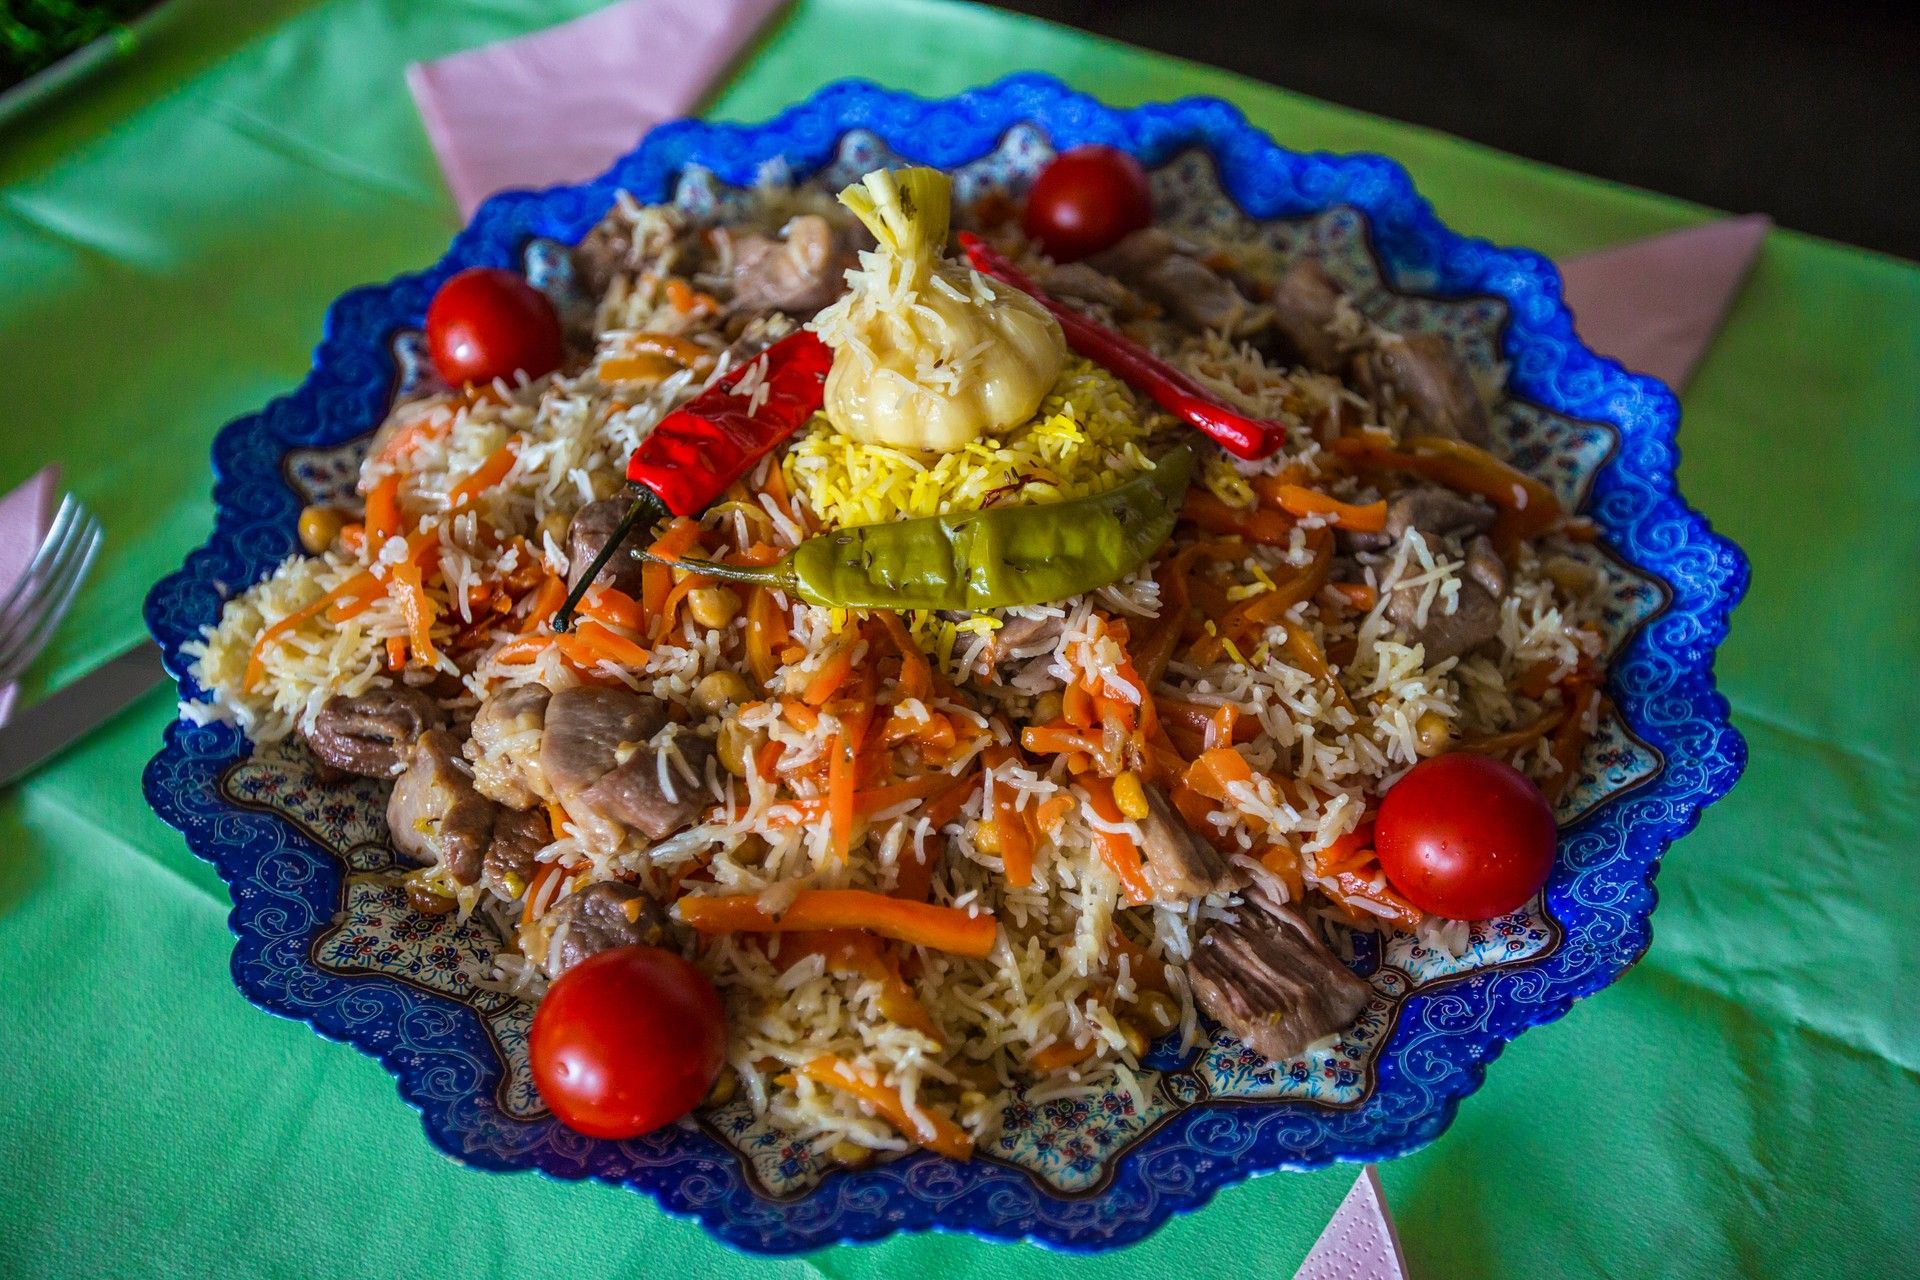 Plov, traditional Central Asian dish